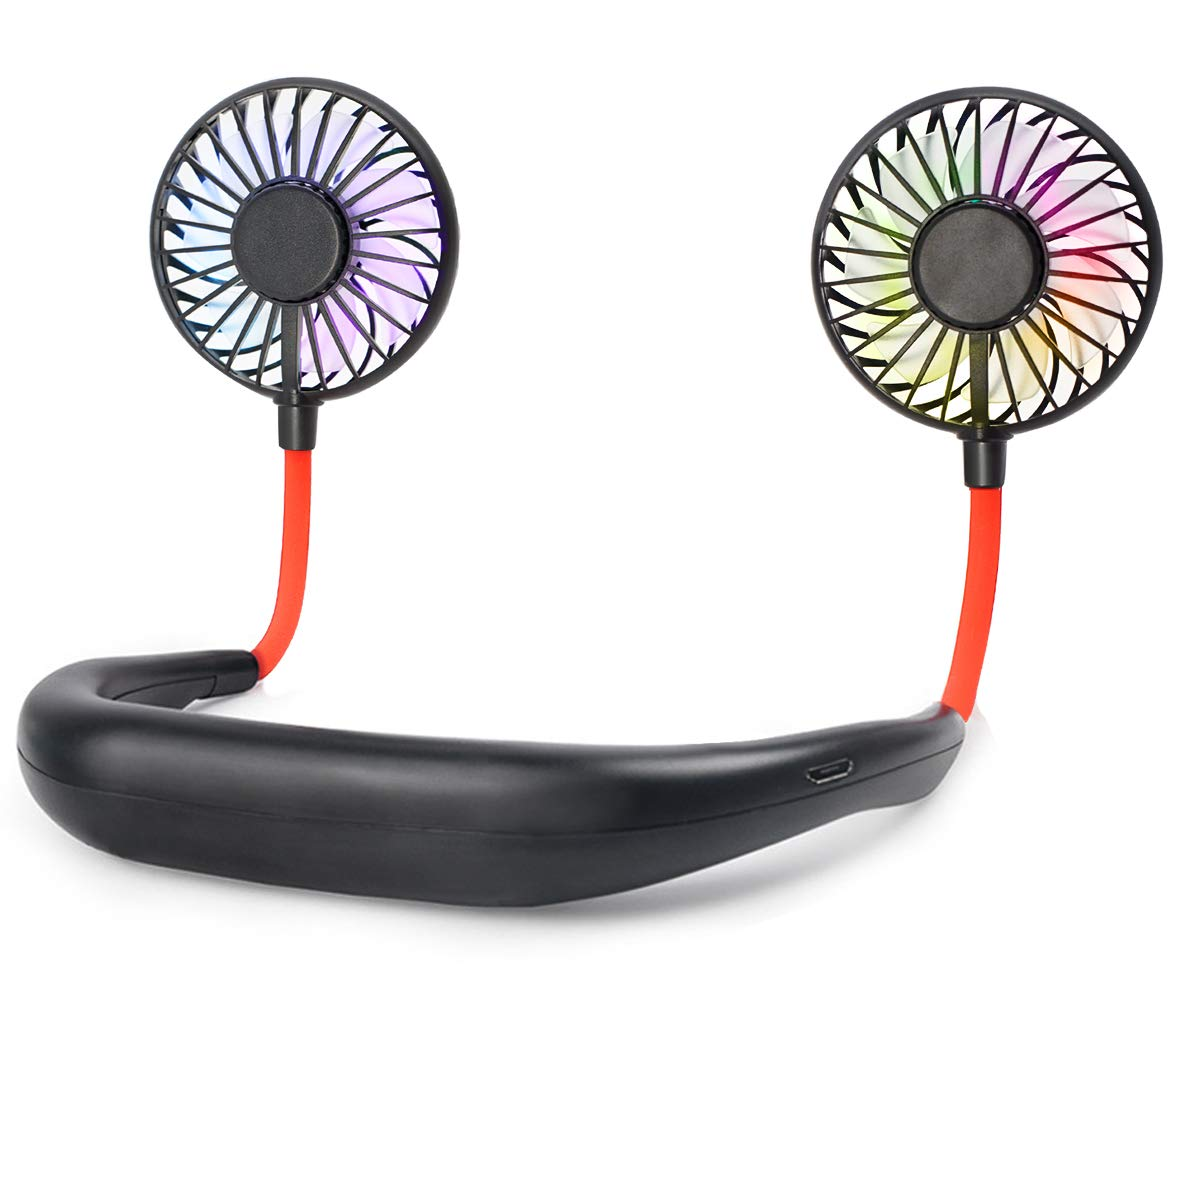 biukpci Mini Hand Free Personal Fan USB Rechargeable Desk Fan with 2500mA Battery Capacity 3 Adjustable Speed Headphone Design Wearable Neckband Fan for Travel Office Room Outdoor Household - Black by biukpci